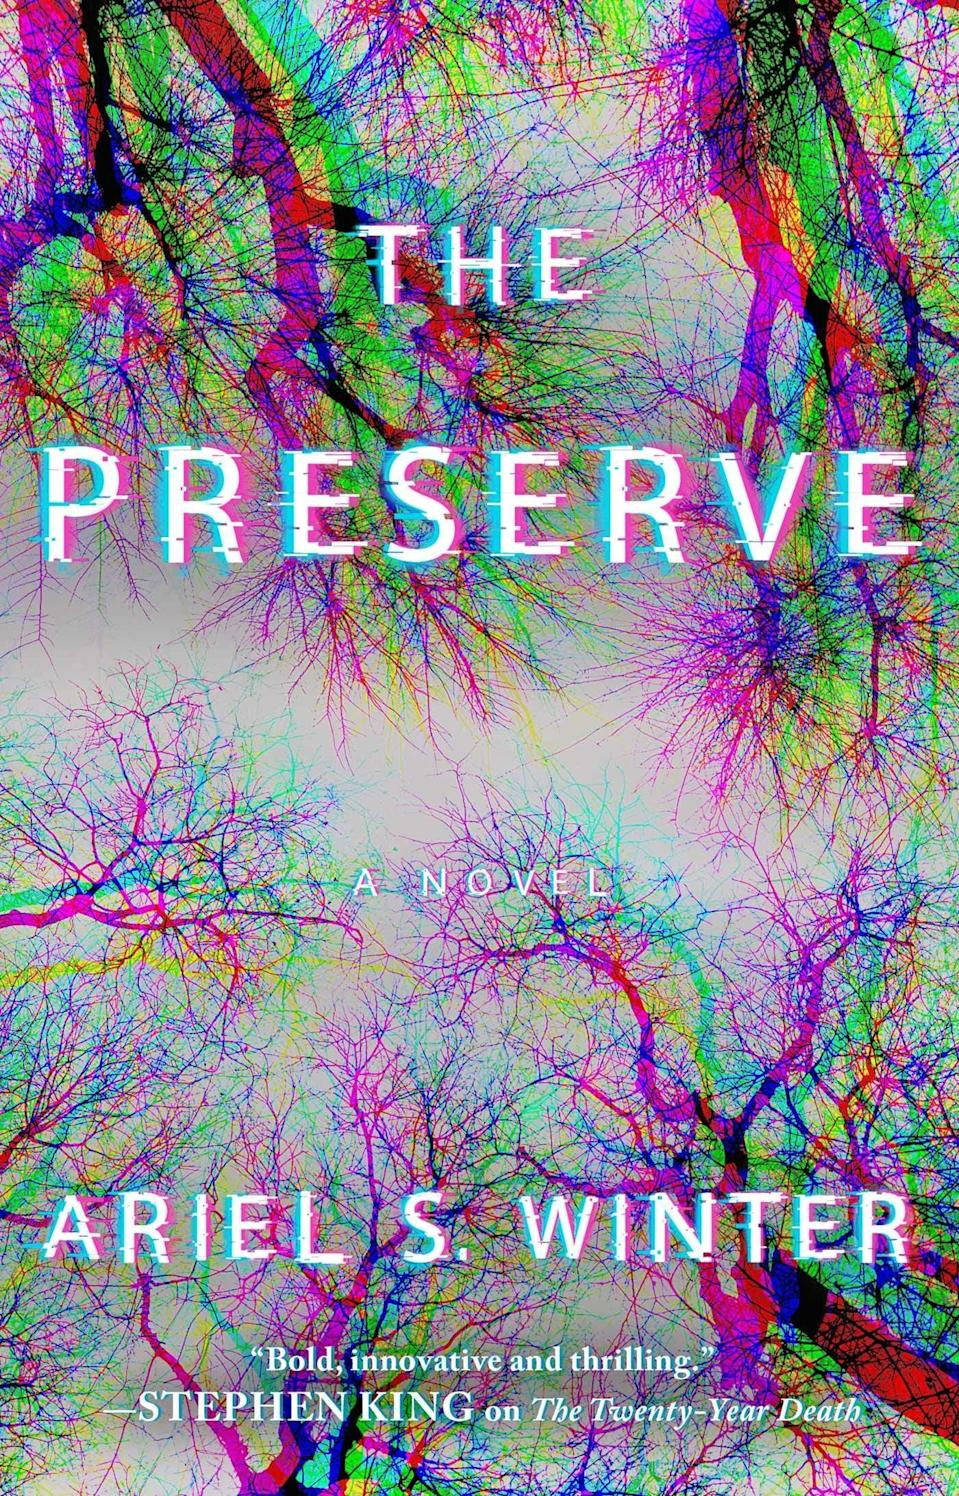 <p>Full of smart commentary about the current state of America, Ariel S. Winter's <span><strong>The Preserve</strong></span> is set in a not-too-distant future after a plague led to a robot uprising. With robots now the ruling class, they set up preserves where humans can live without interference. But when a murder occurs on one of the preserves, Chief of Police Jesse Laughton will have to unravel a conspiracy if he wants to keep the robot government from shutting down the preserve experiment for good. </p> <p><em>Out Nov. 3</em></p>